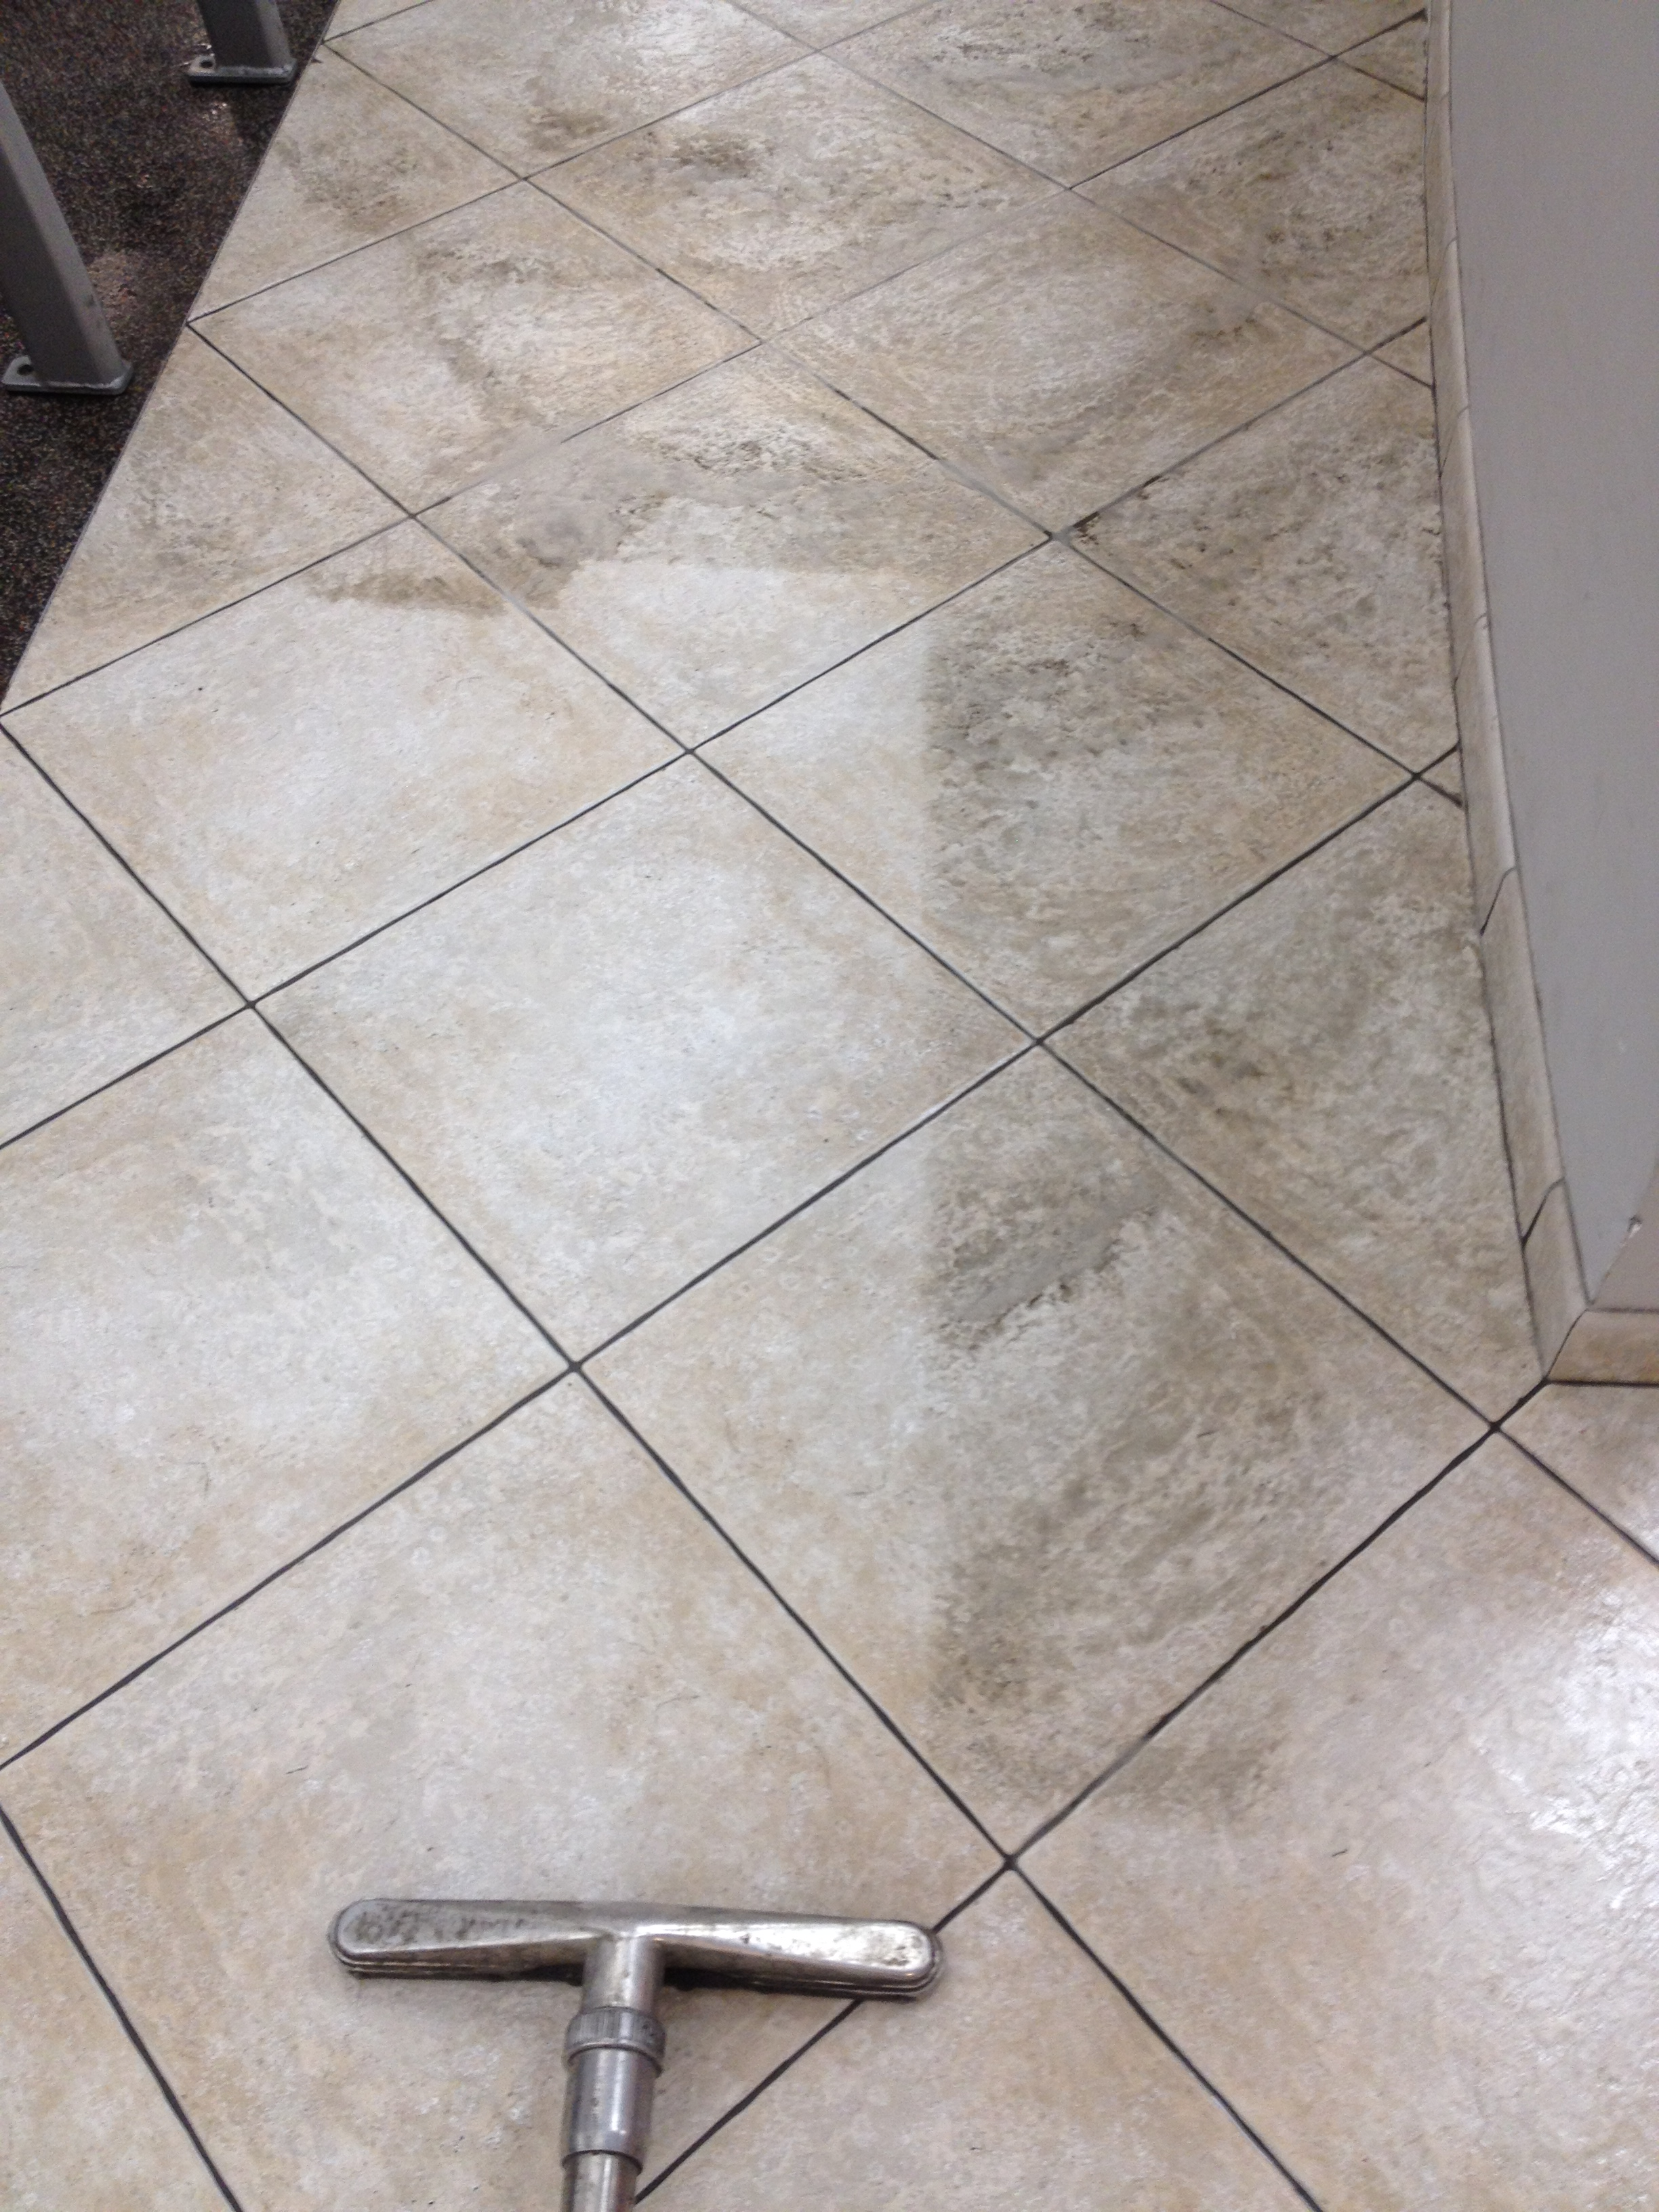 Ceramic tile cleaning scrub extraction of ceramic tile dailygadgetfo Choice Image